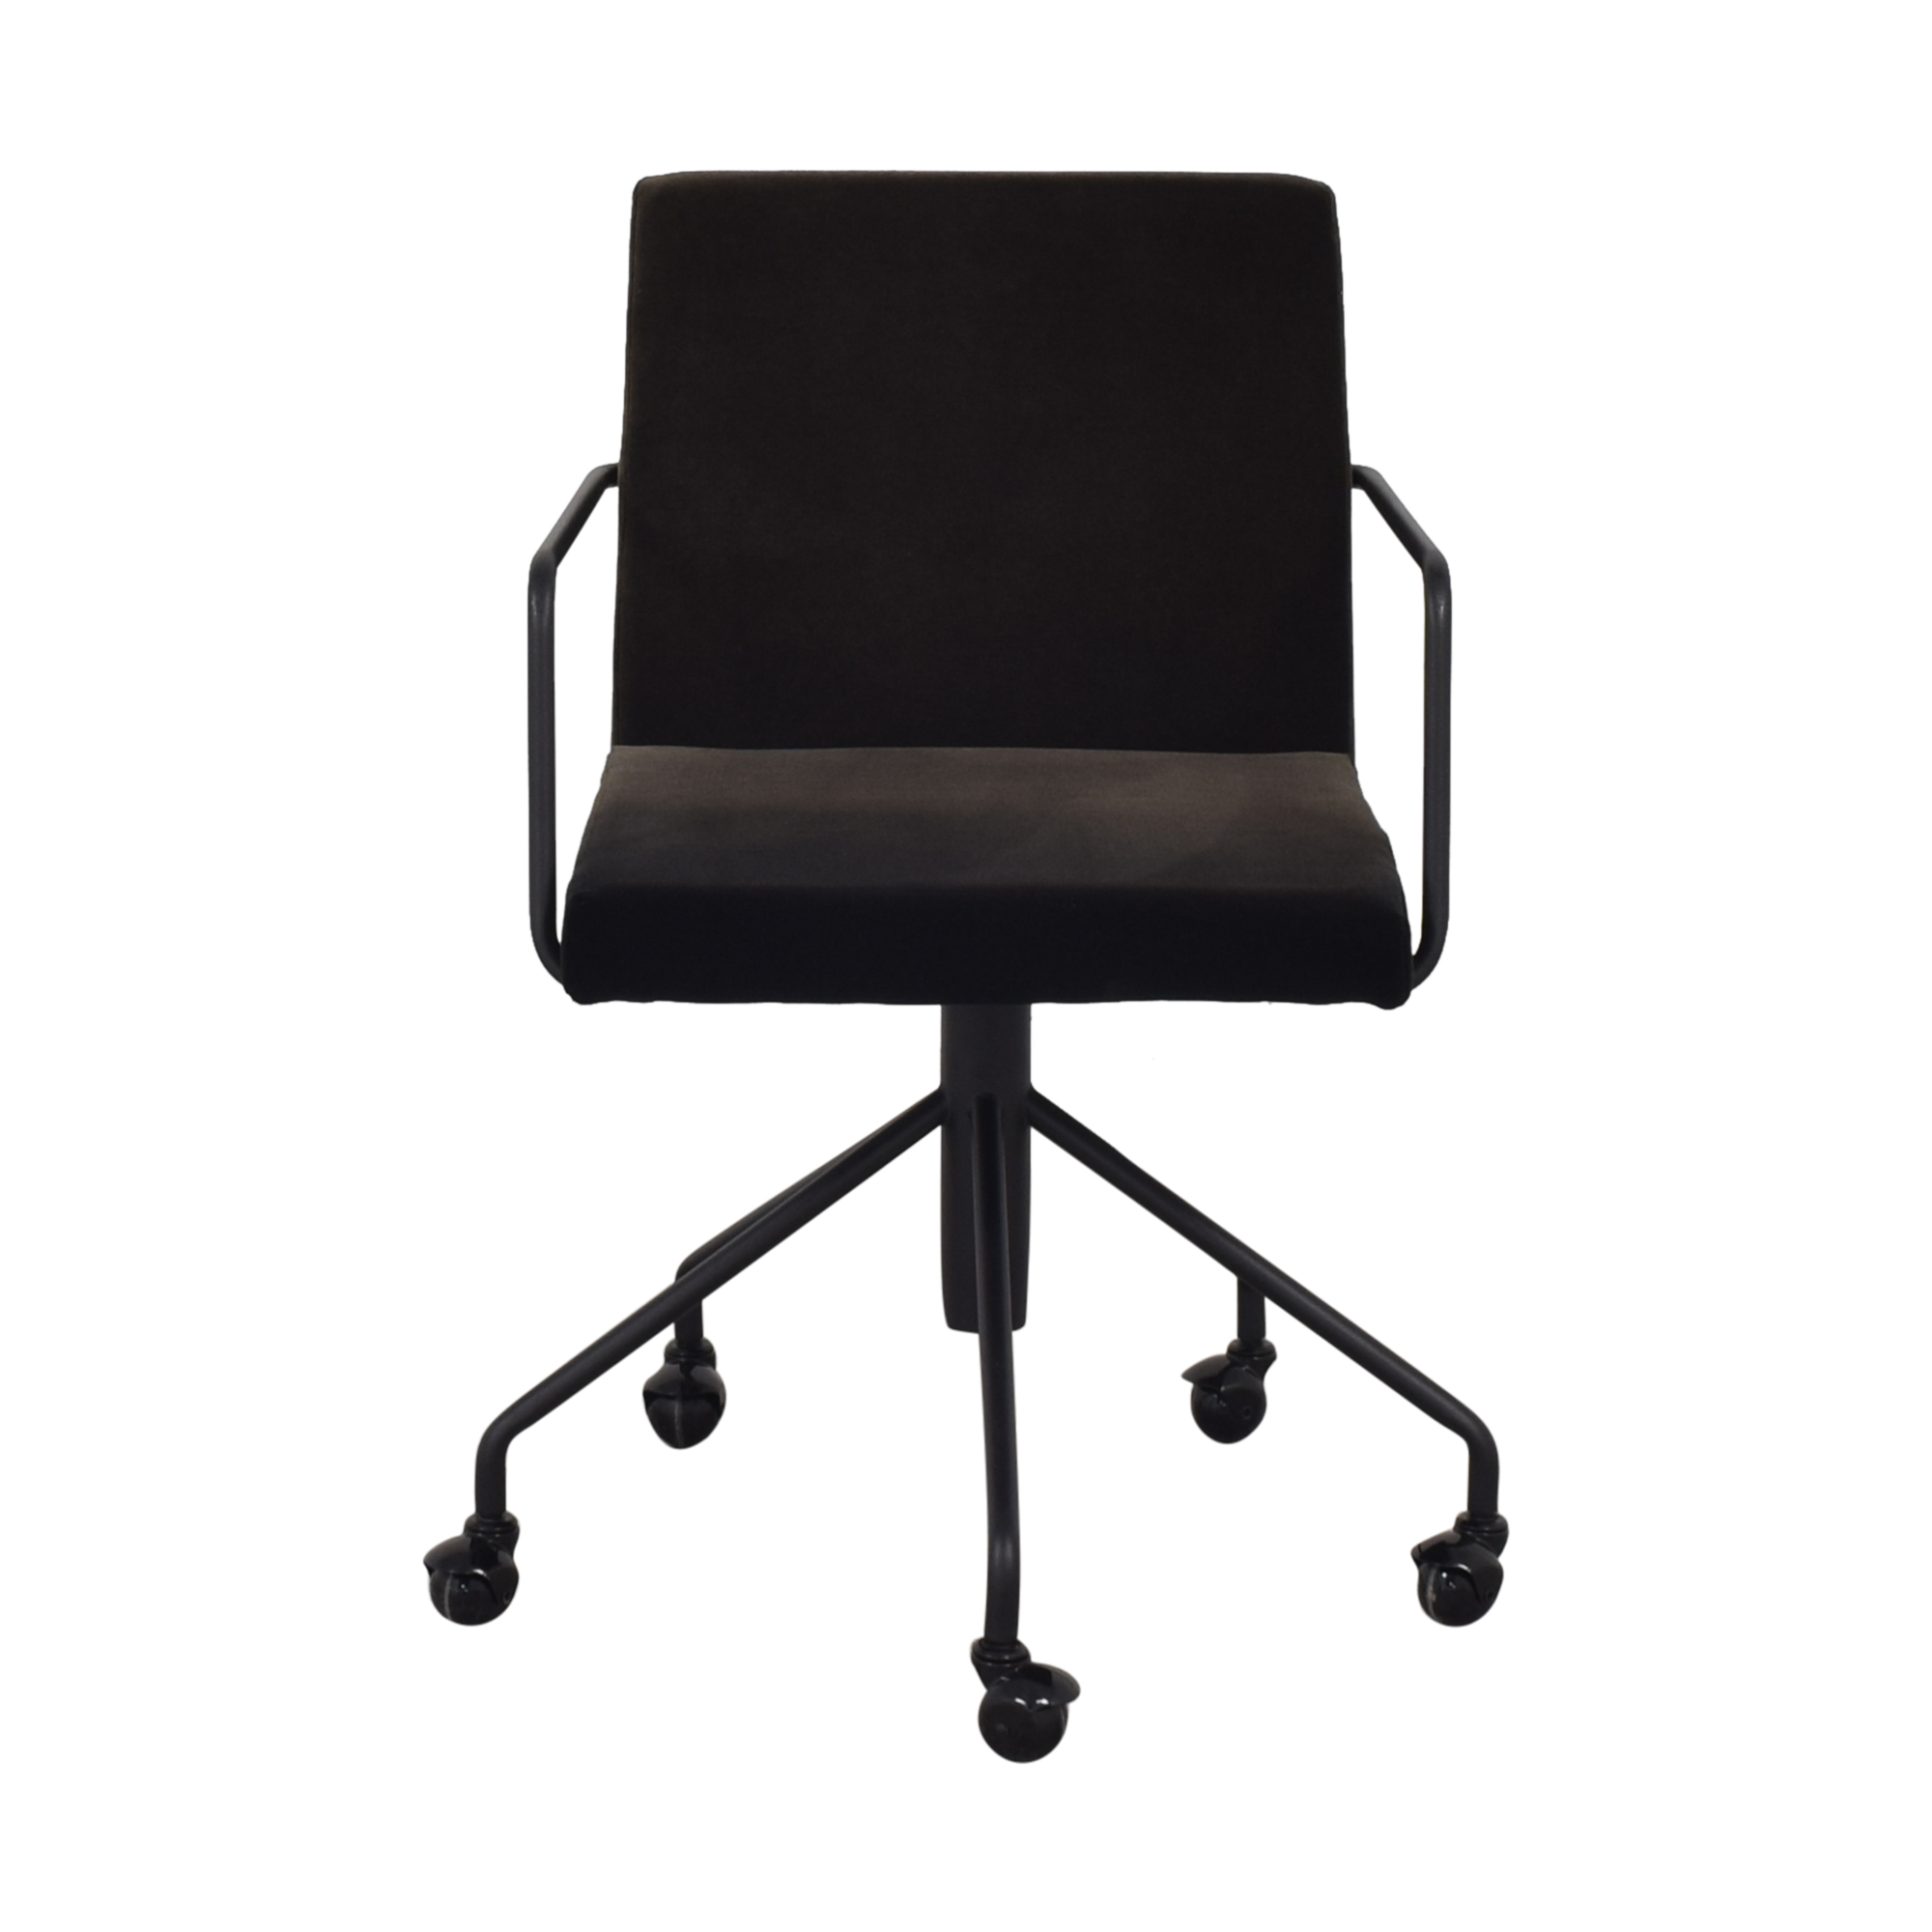 CB2 Rouka Home Office Chair CB2